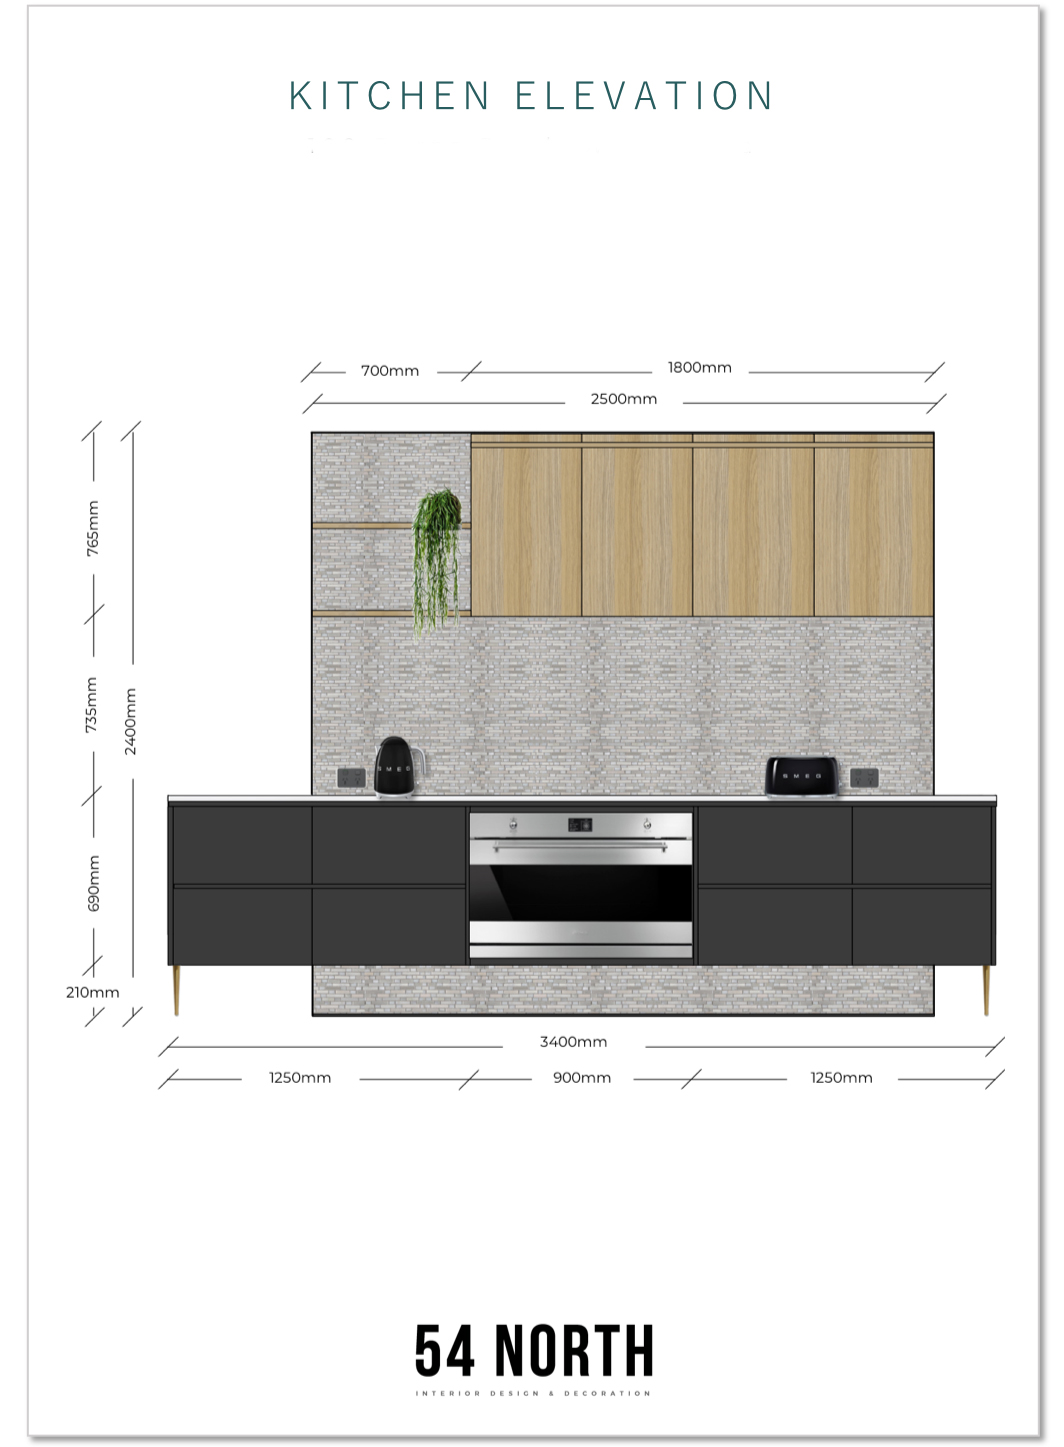 Kitchen Elevation S10 copy (Edited).jpg